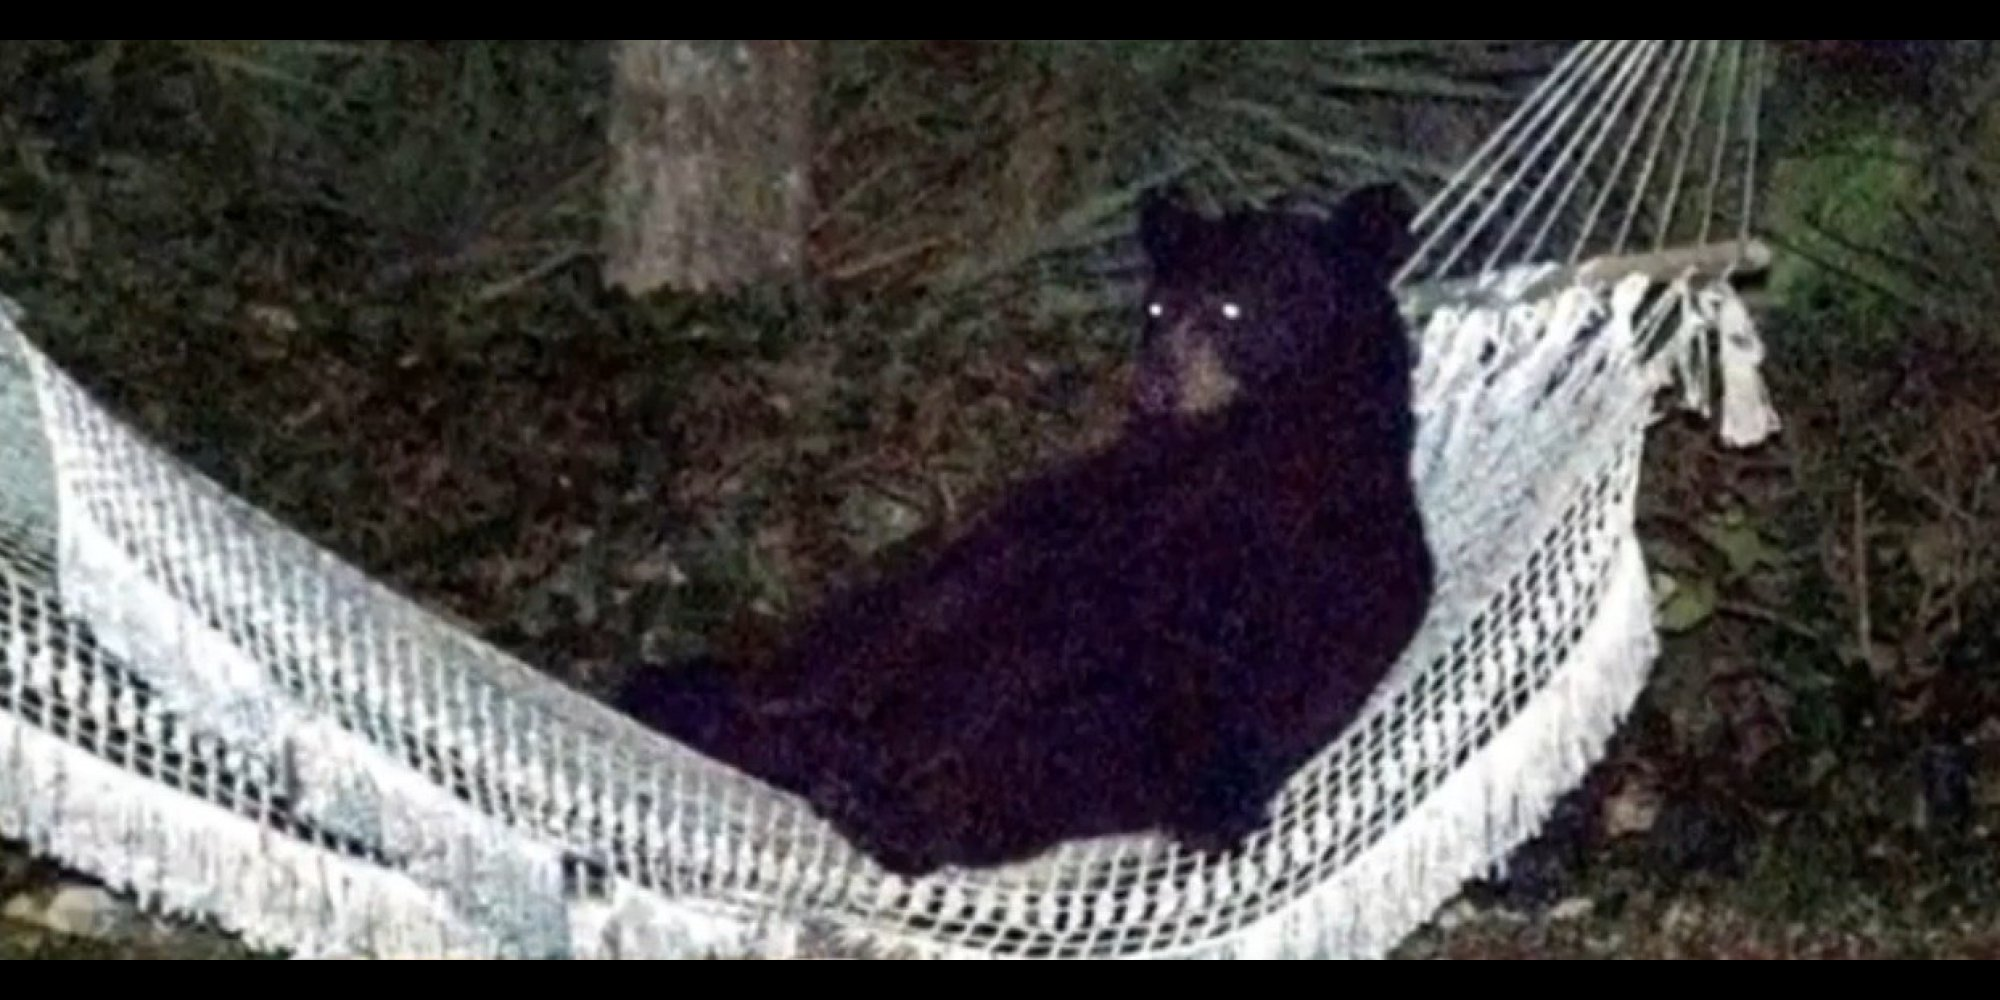 Bear In A Hammock Hammock Later Removed By Owner